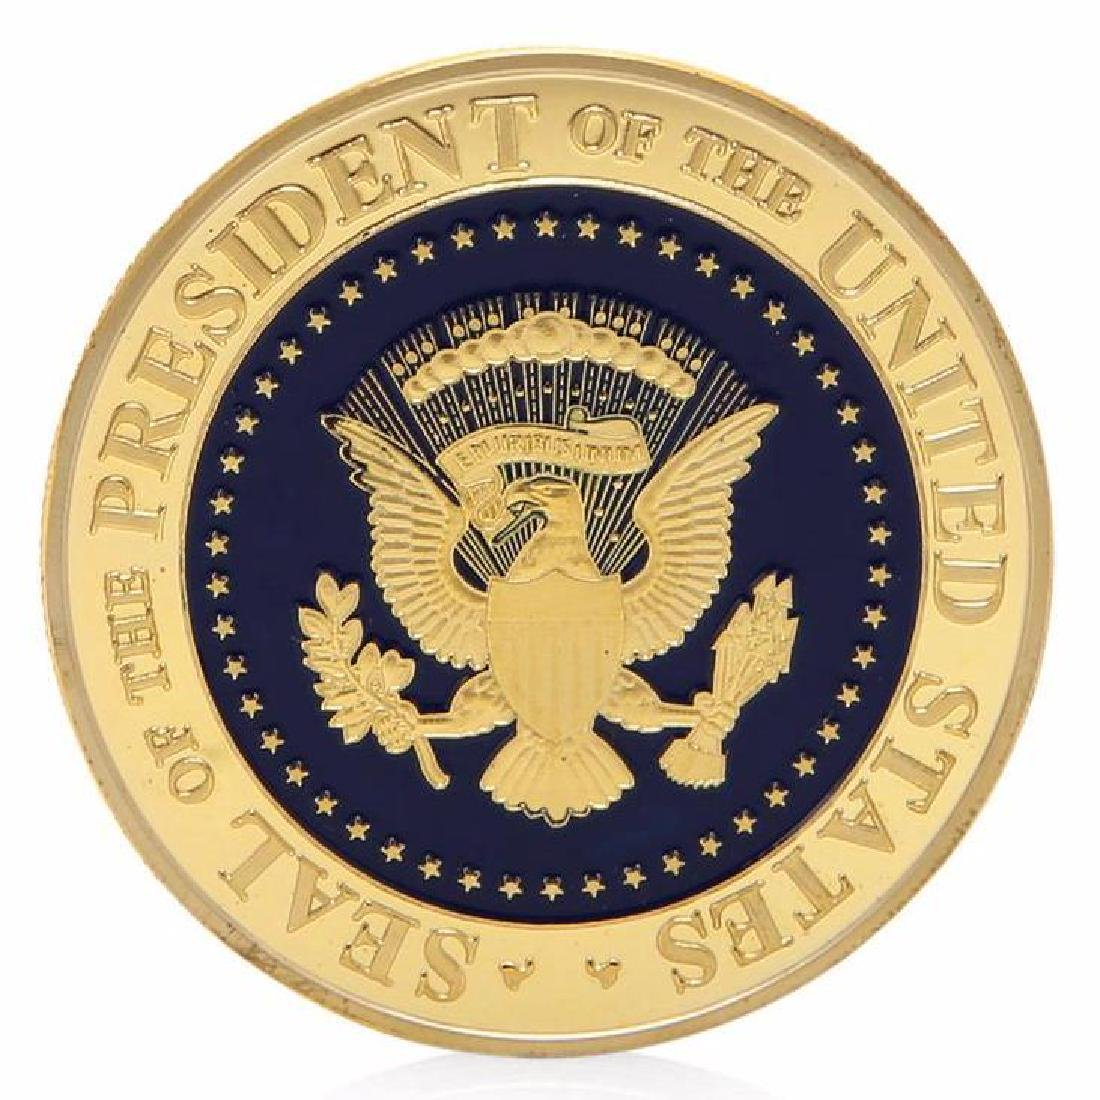 Donald Trump 45th President Gold Clad Coin - 2